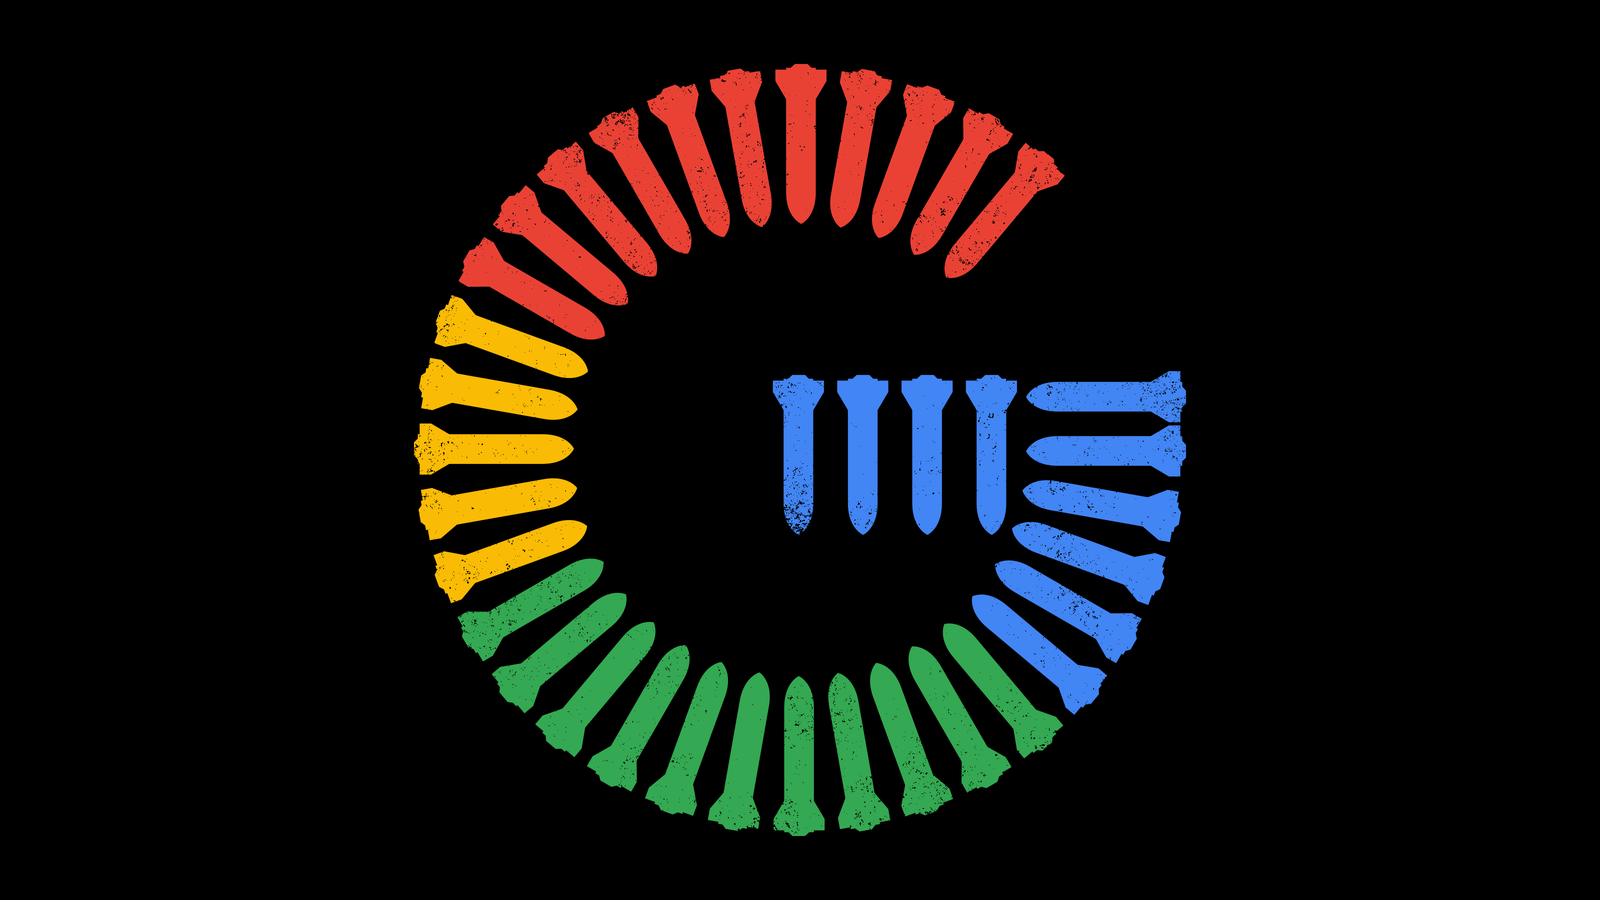 Google Plans Not To Renew Its Contract For Project Maven